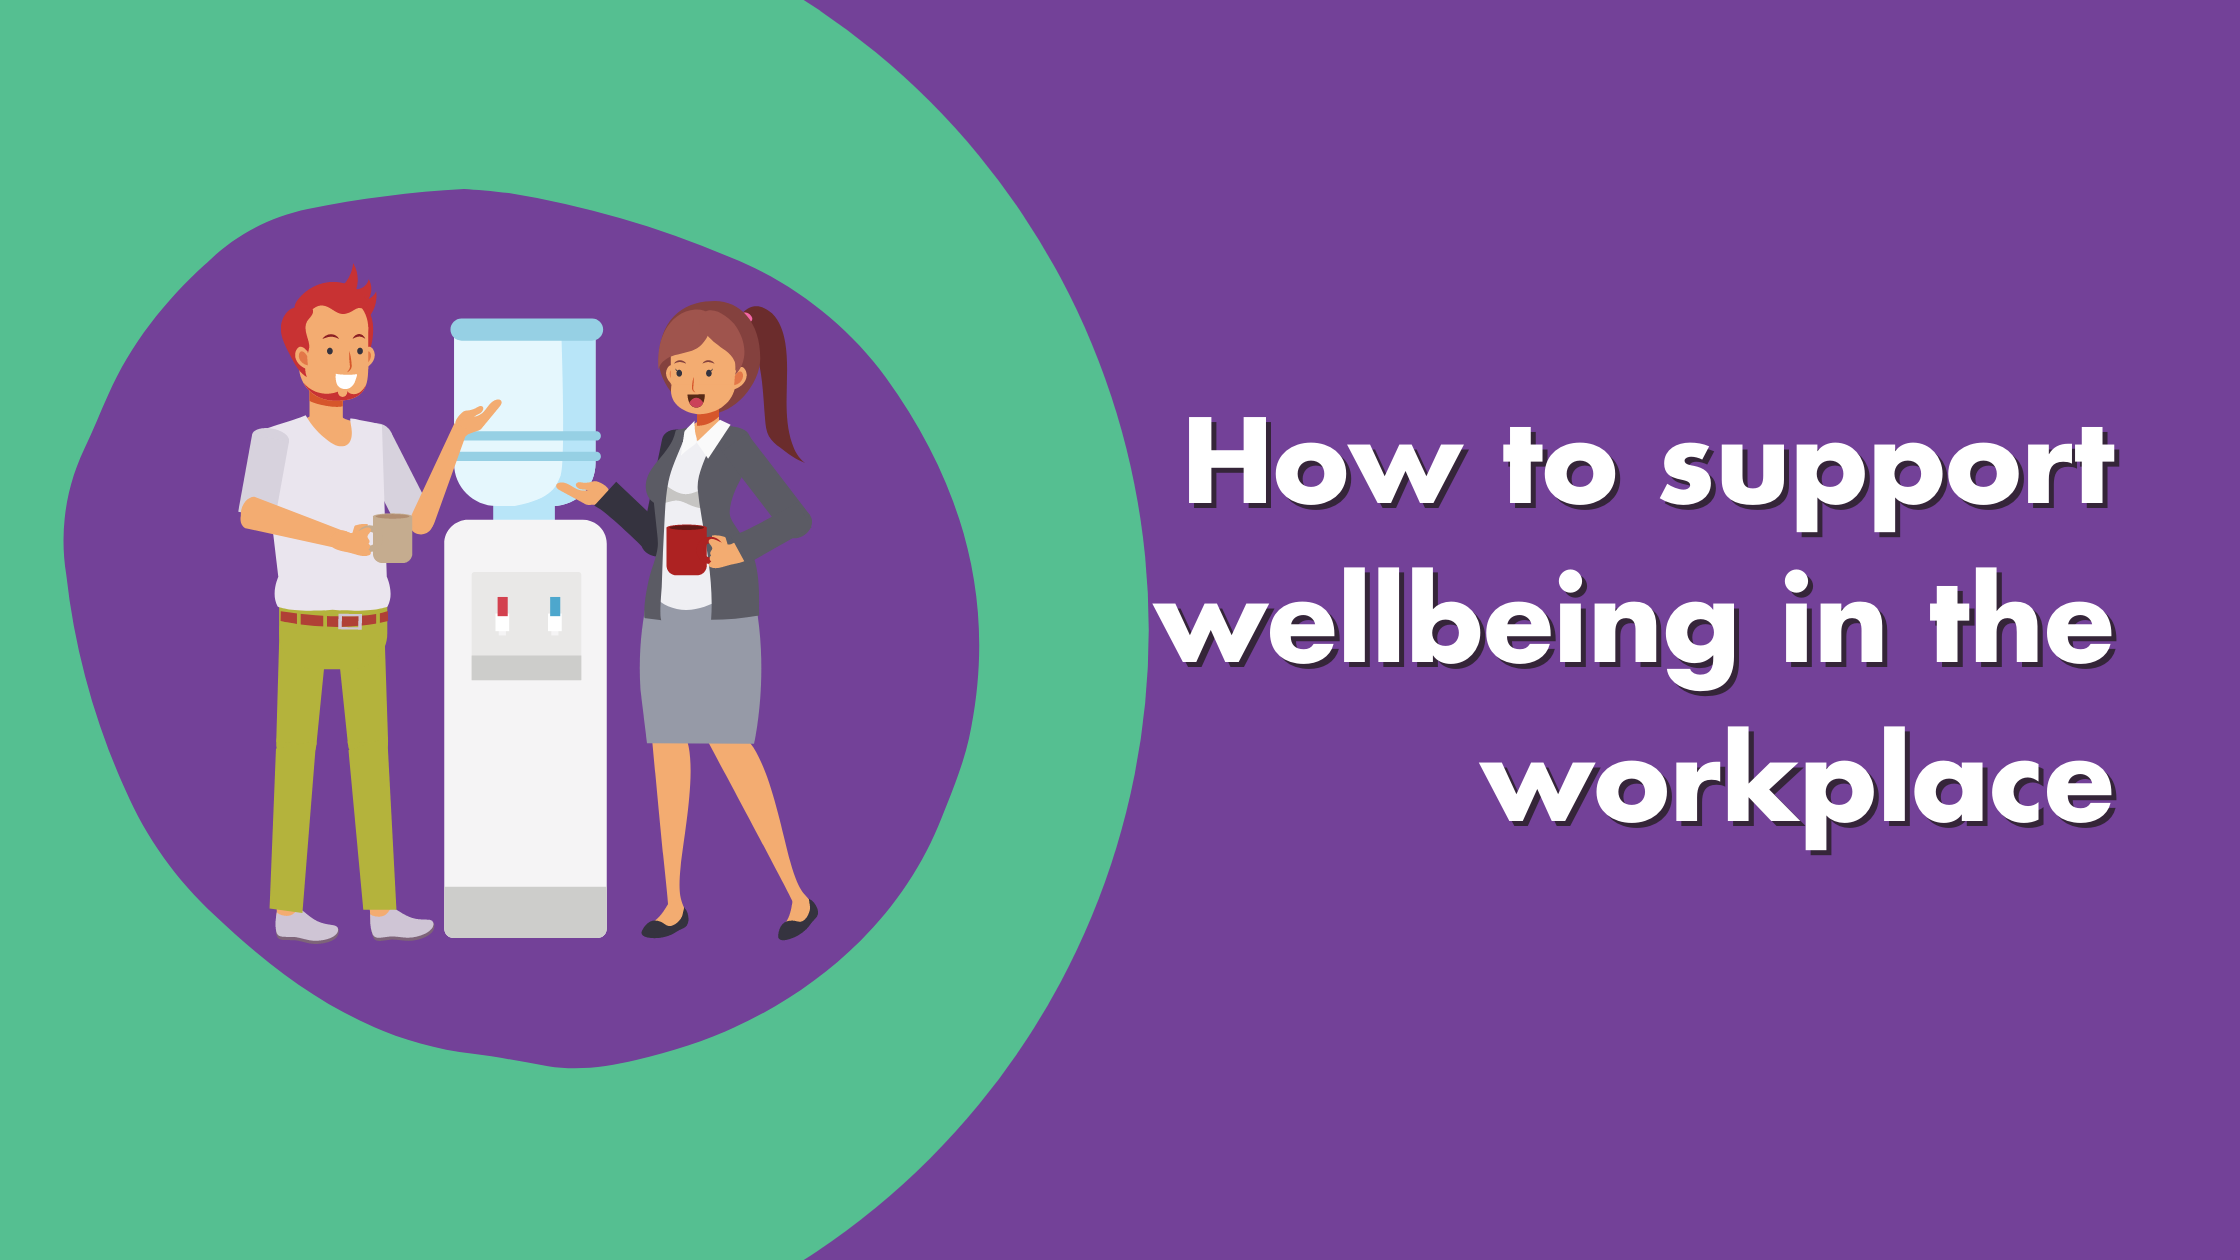 How To Support Wellbeing In The Workplace